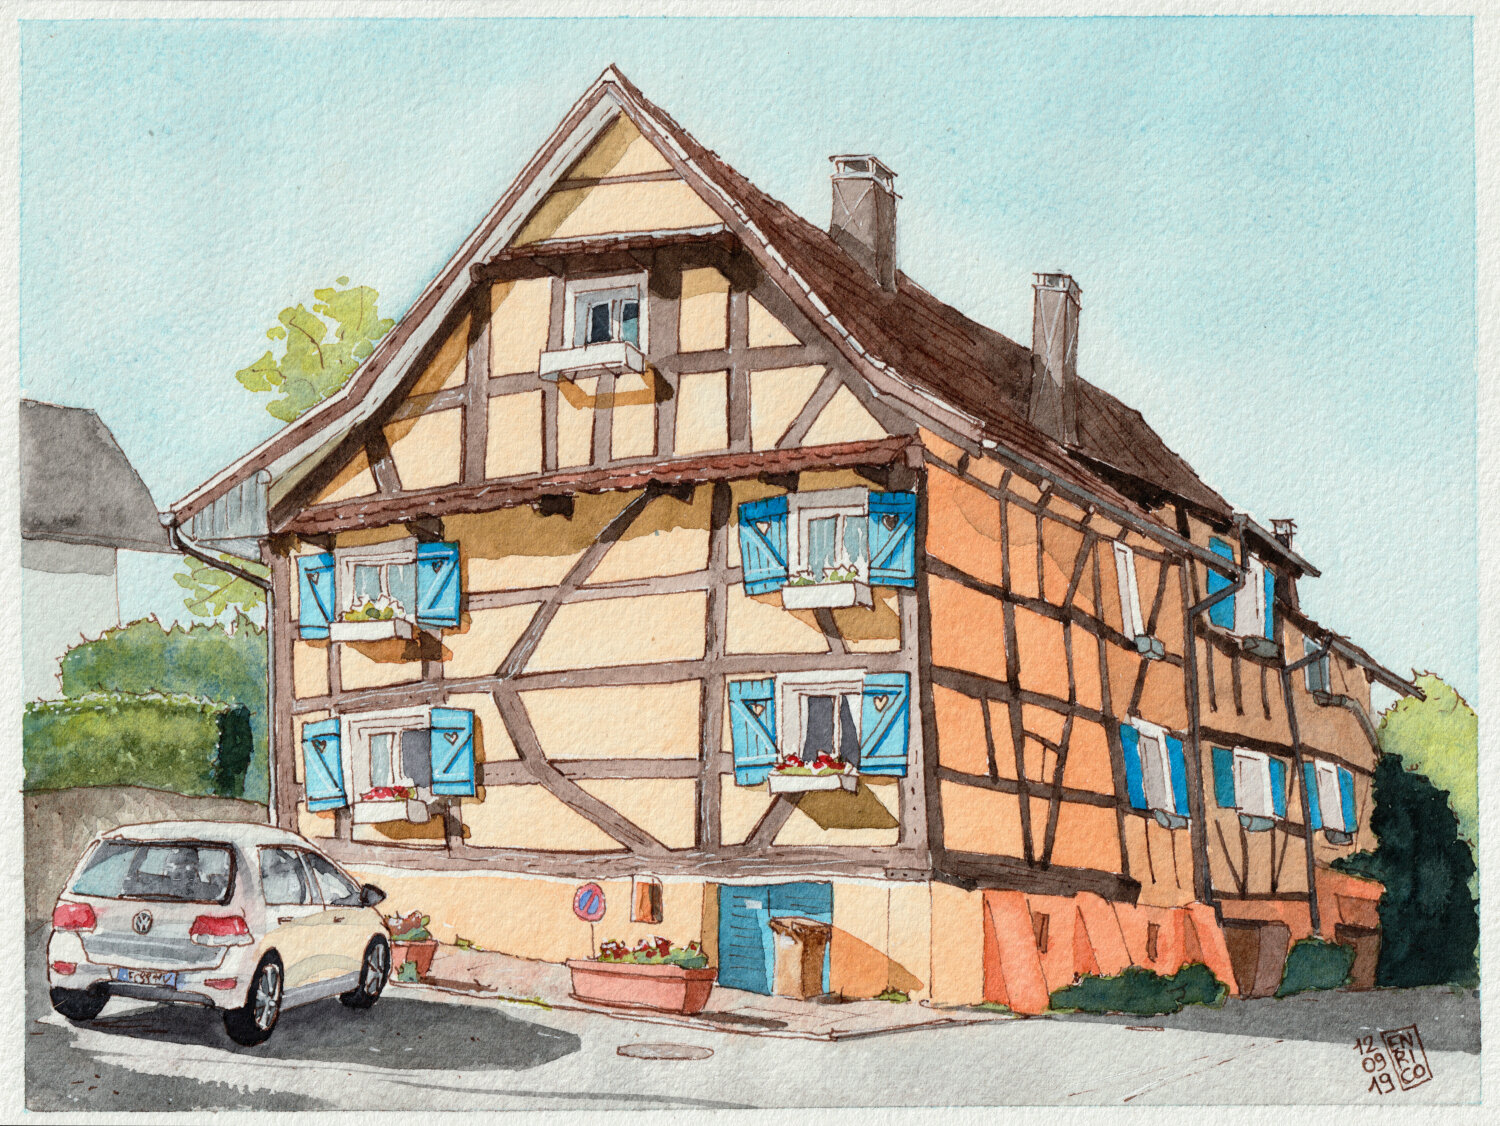 I took a bike trip in Alsace, just over the border from Basel. The houses there are very nice.